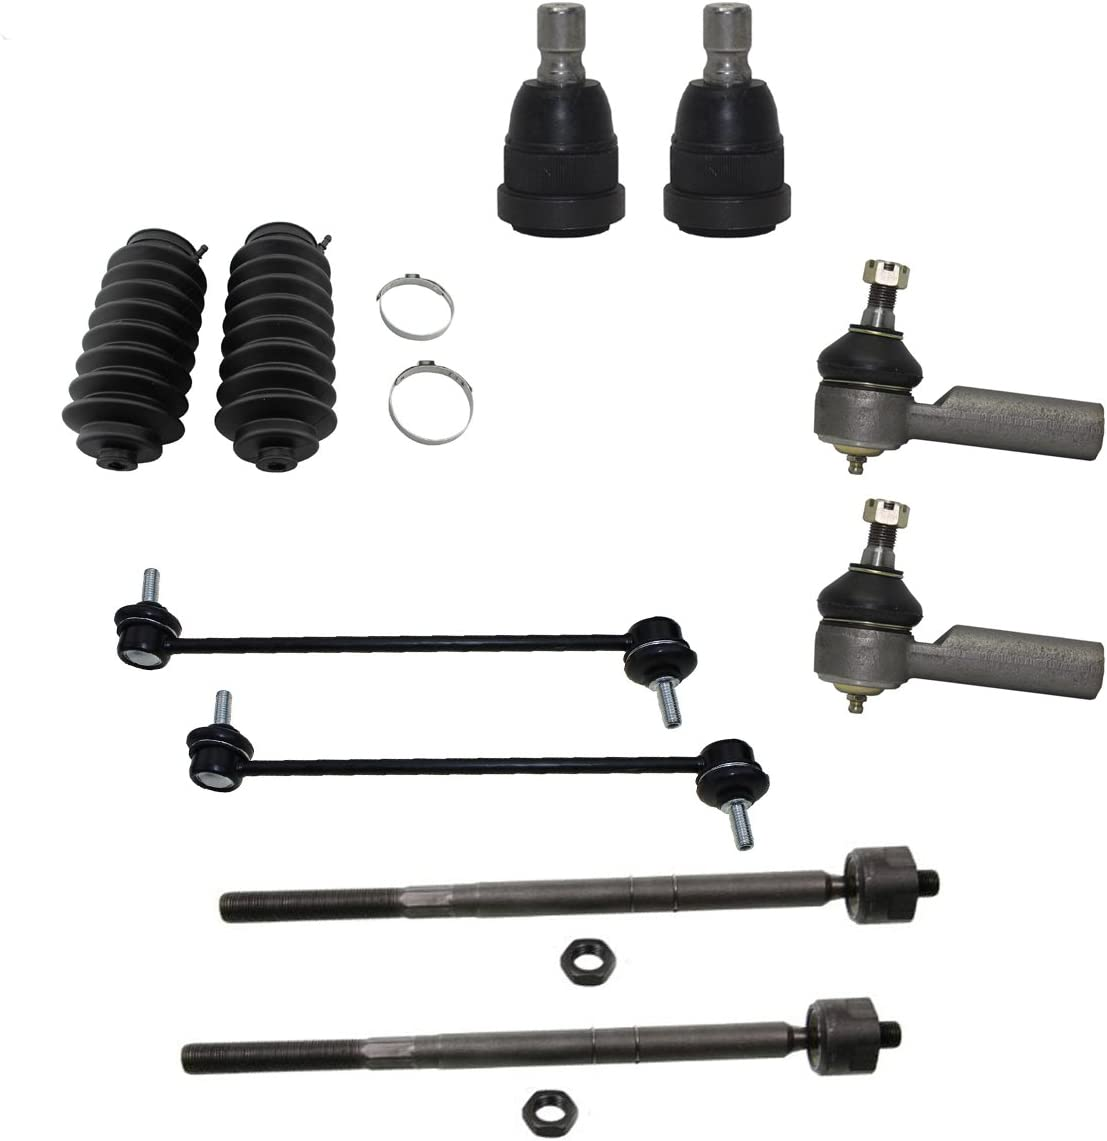 Detroit Axle 05-09 Tribute Sway Bars 10pc Front Lower Ball Joints - 05-09 Mariner Inner Otuer Tie Rods w//Rack Boots Kit for 2005 2006 2007 2008 2009 Ford Escape - NO HYBRID